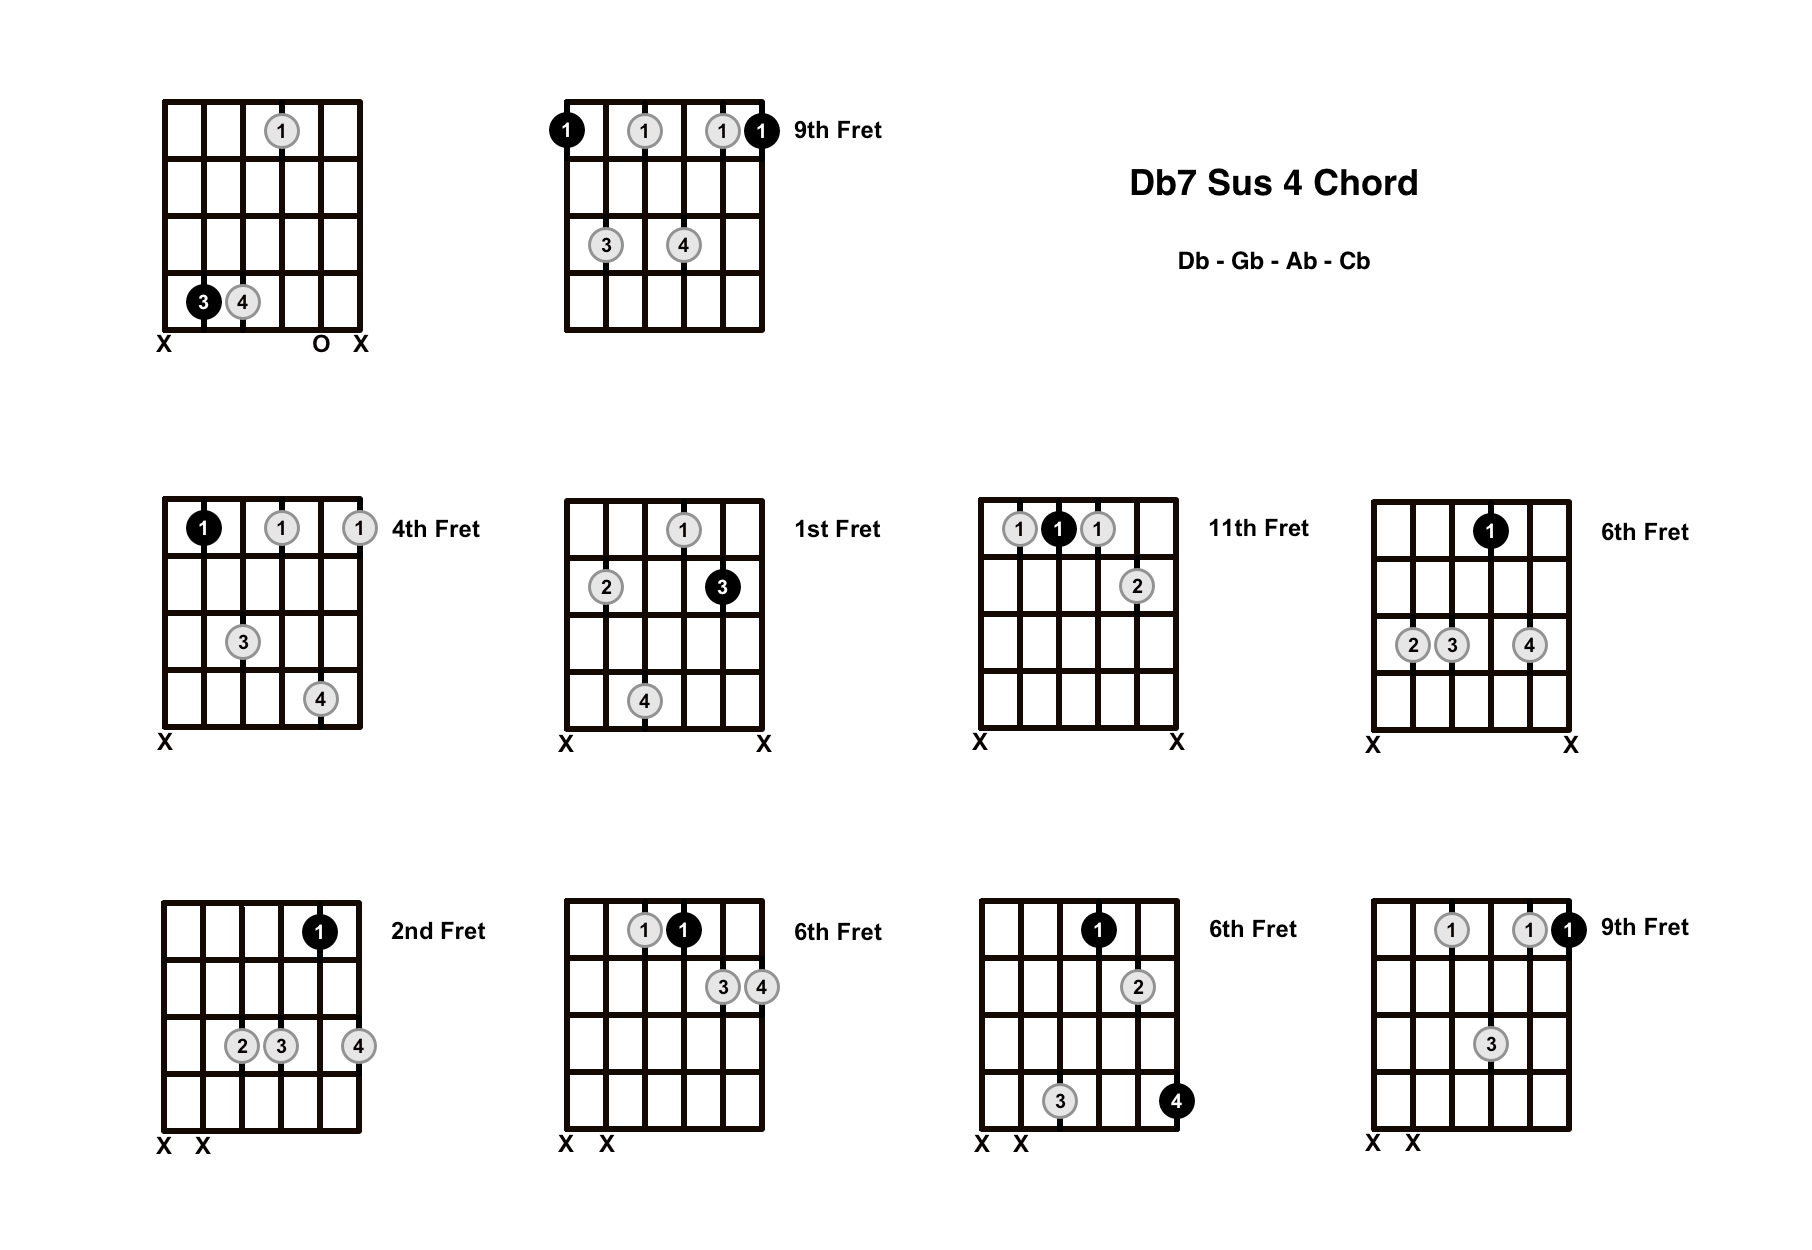 Db7 Sus 4 Chord On The Guitar (D Flat 7 Suspended 4) – Diagrams, Finger Positions and Theory